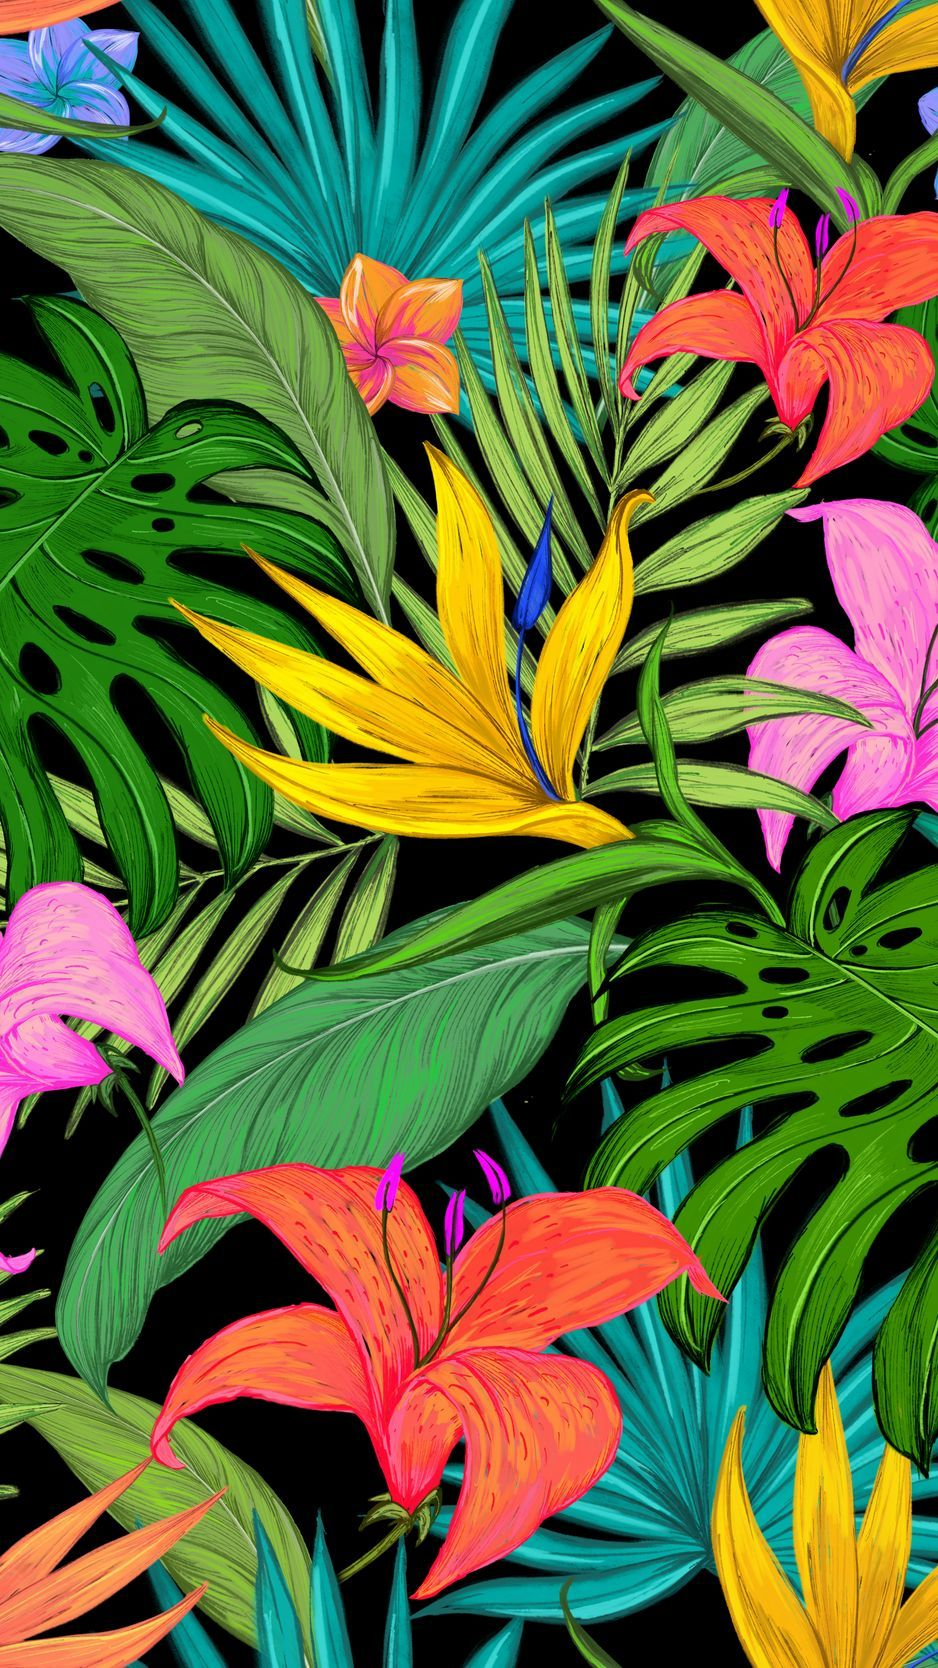 Tropical Leaves Hd Phone Wallpapers Wallpaper Cave Background daun, pattern background with exotic tropical leaves. tropical leaves hd phone wallpapers